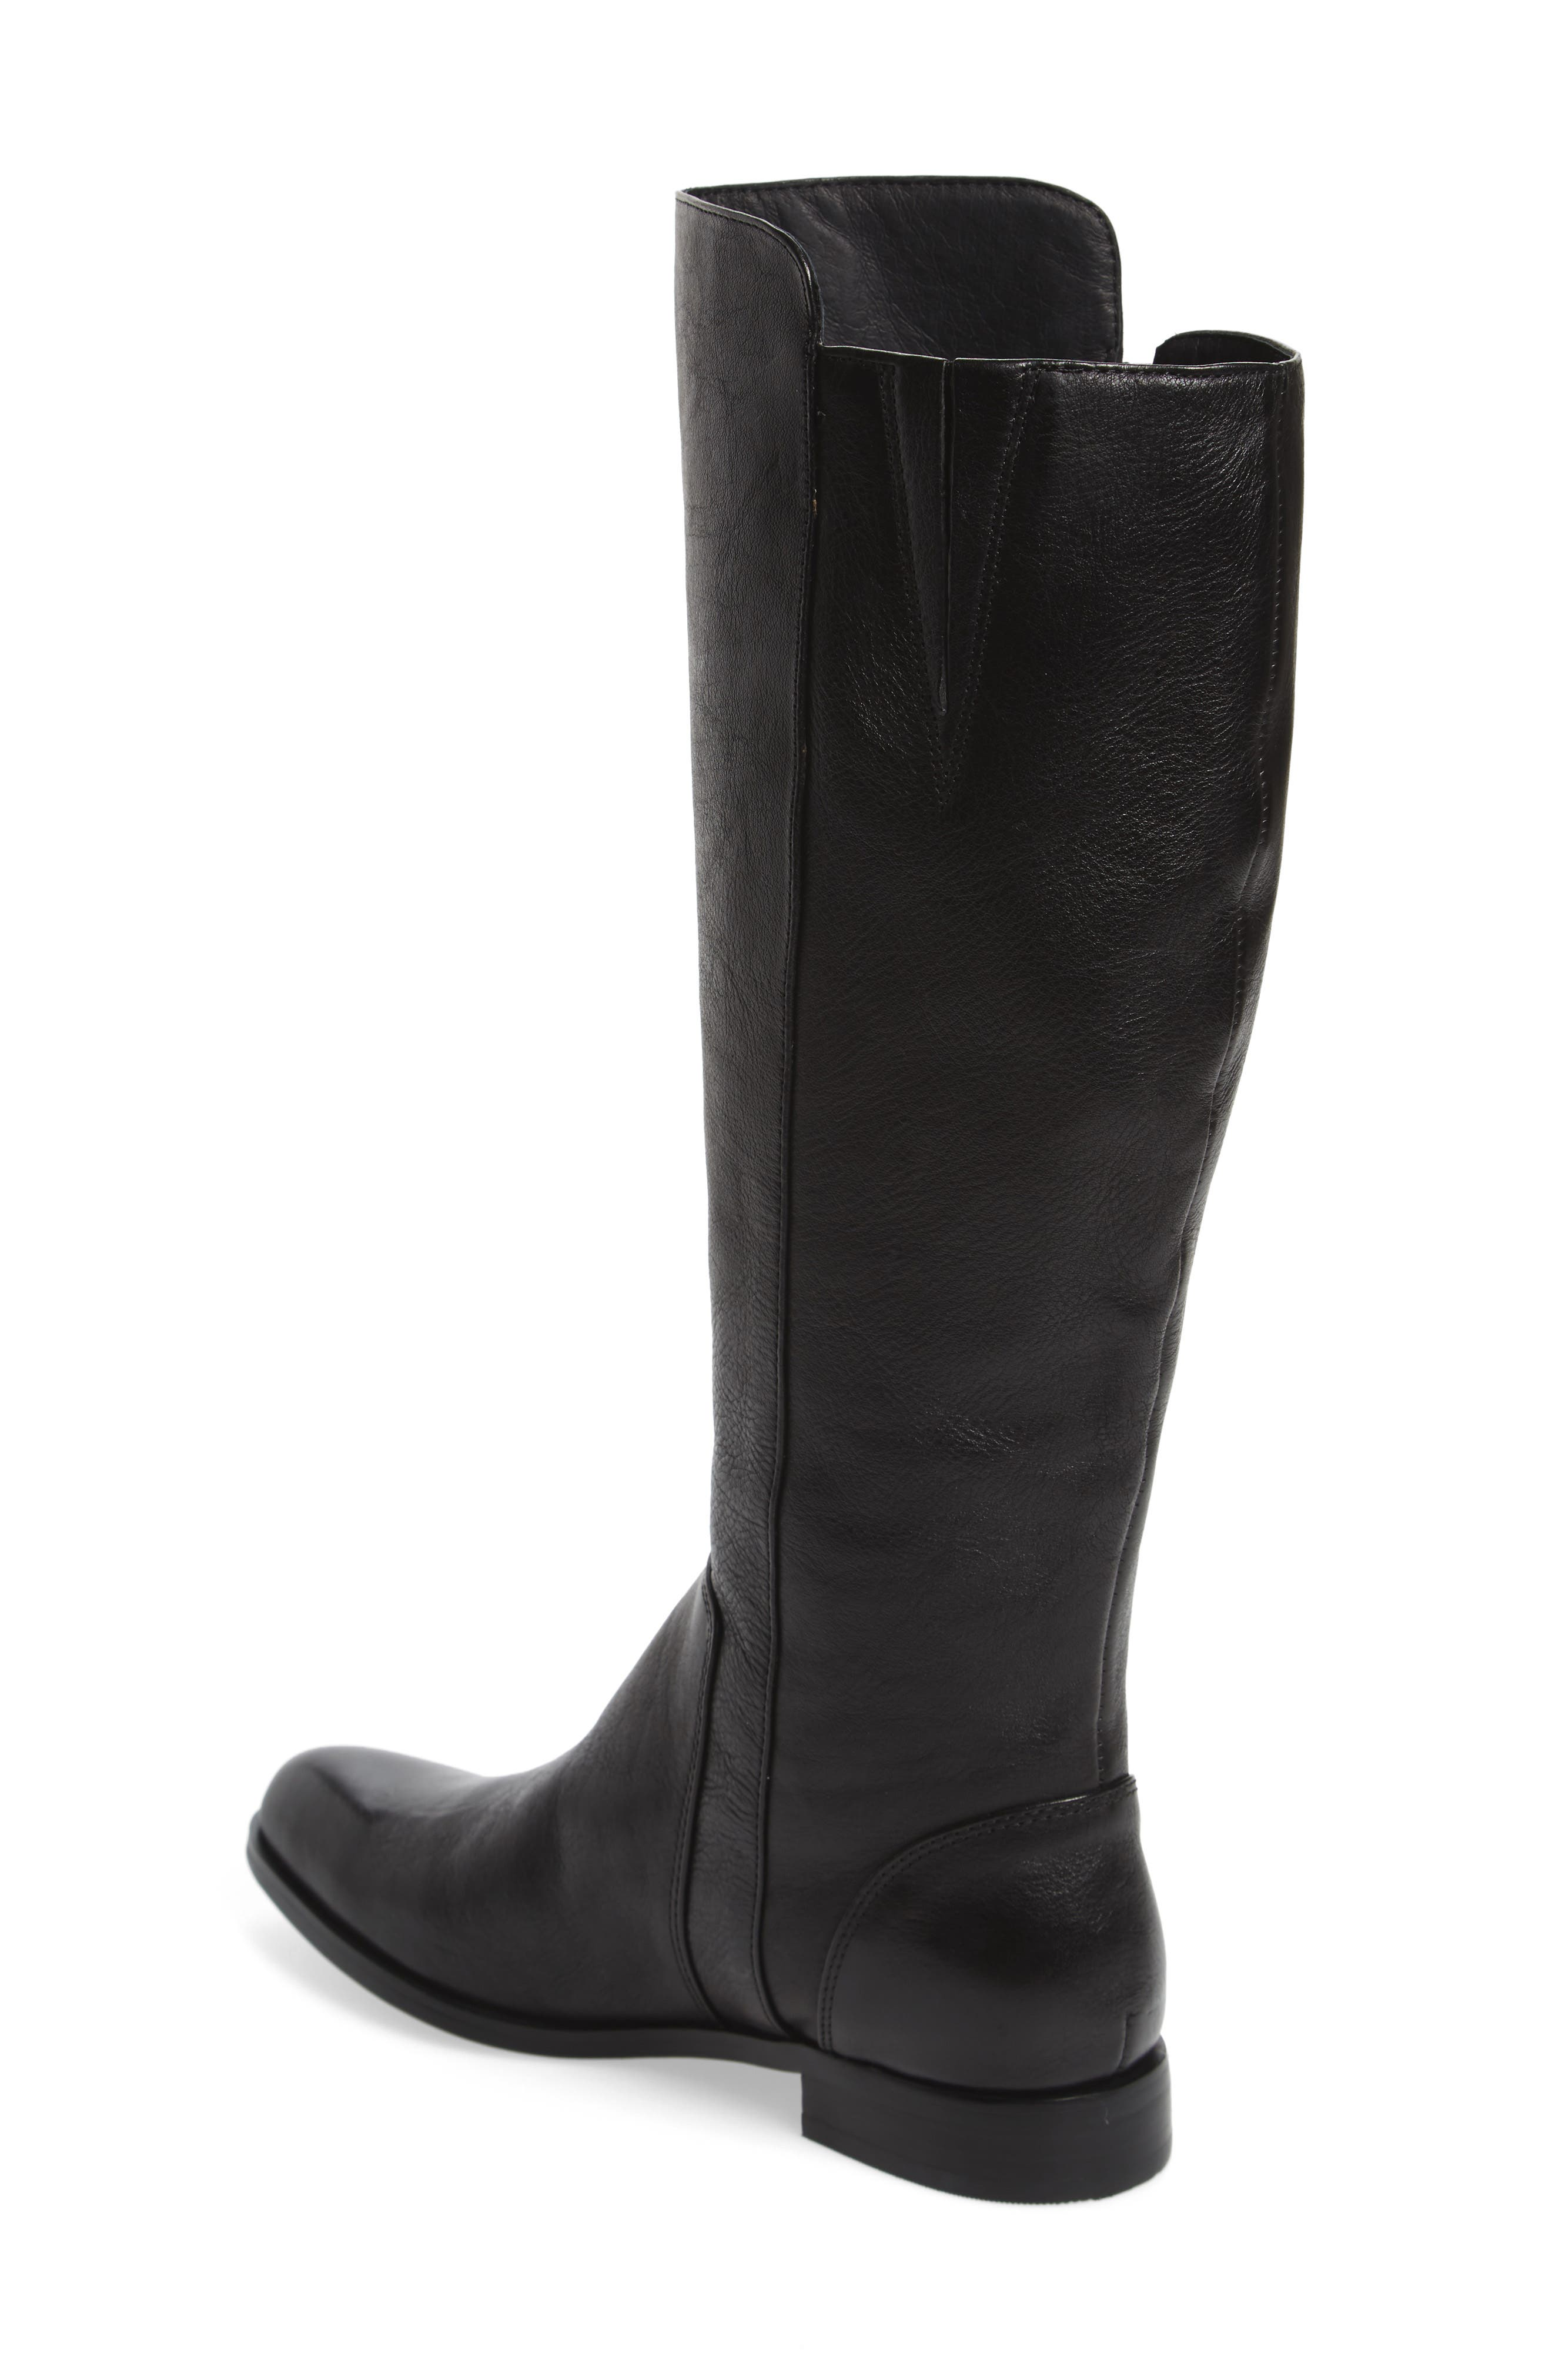 Melino Boot,                             Alternate thumbnail 2, color,                             Black Leather